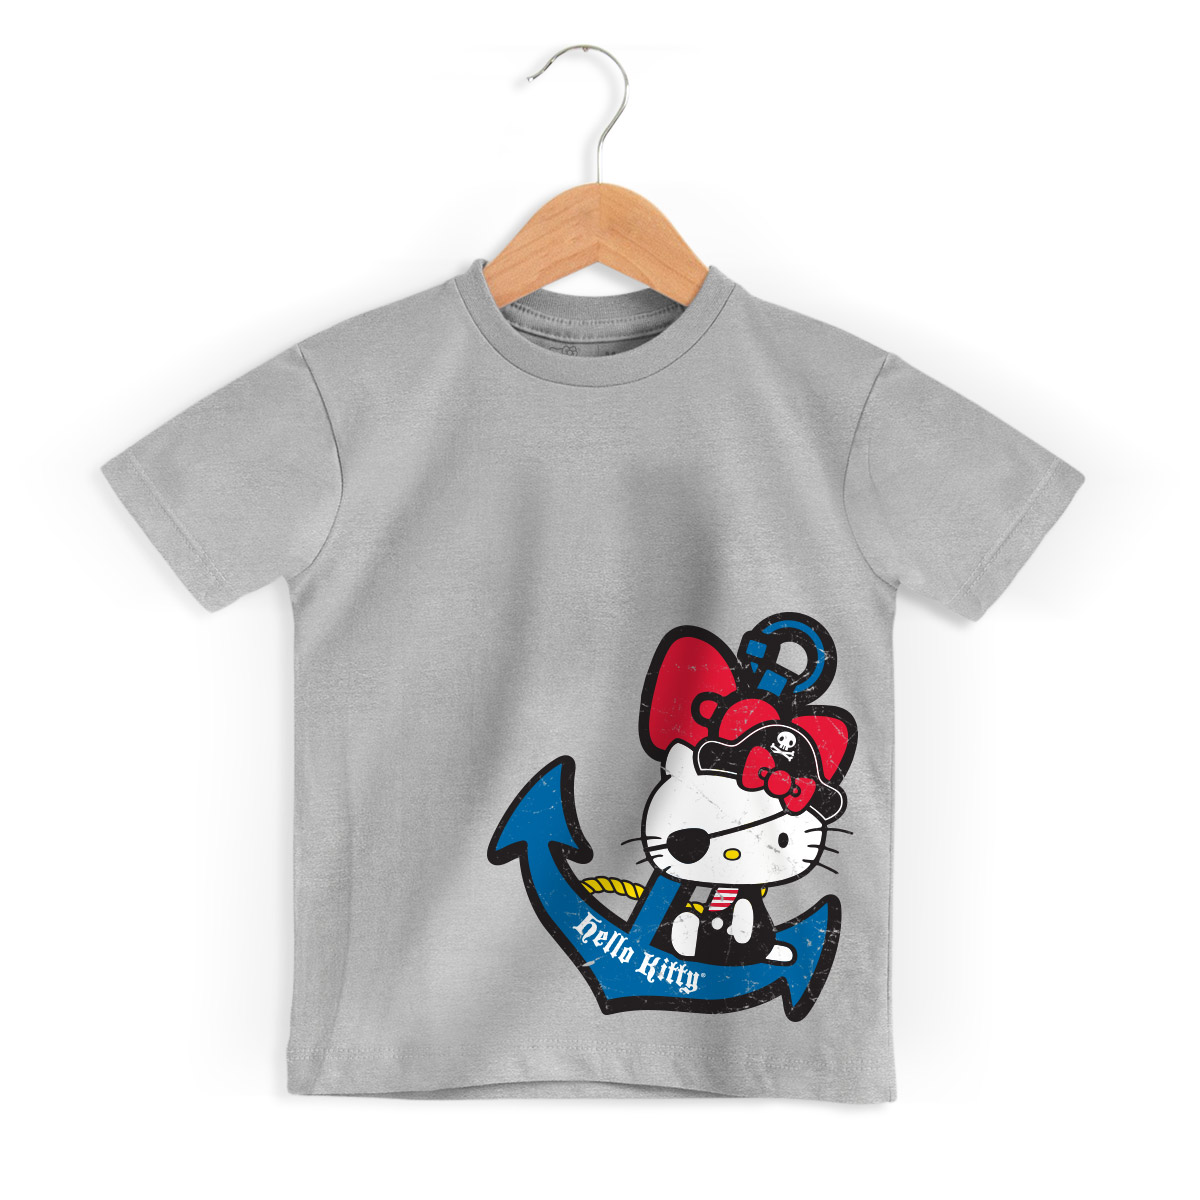 Camiseta Infantil Hello Kitty Pirate 2